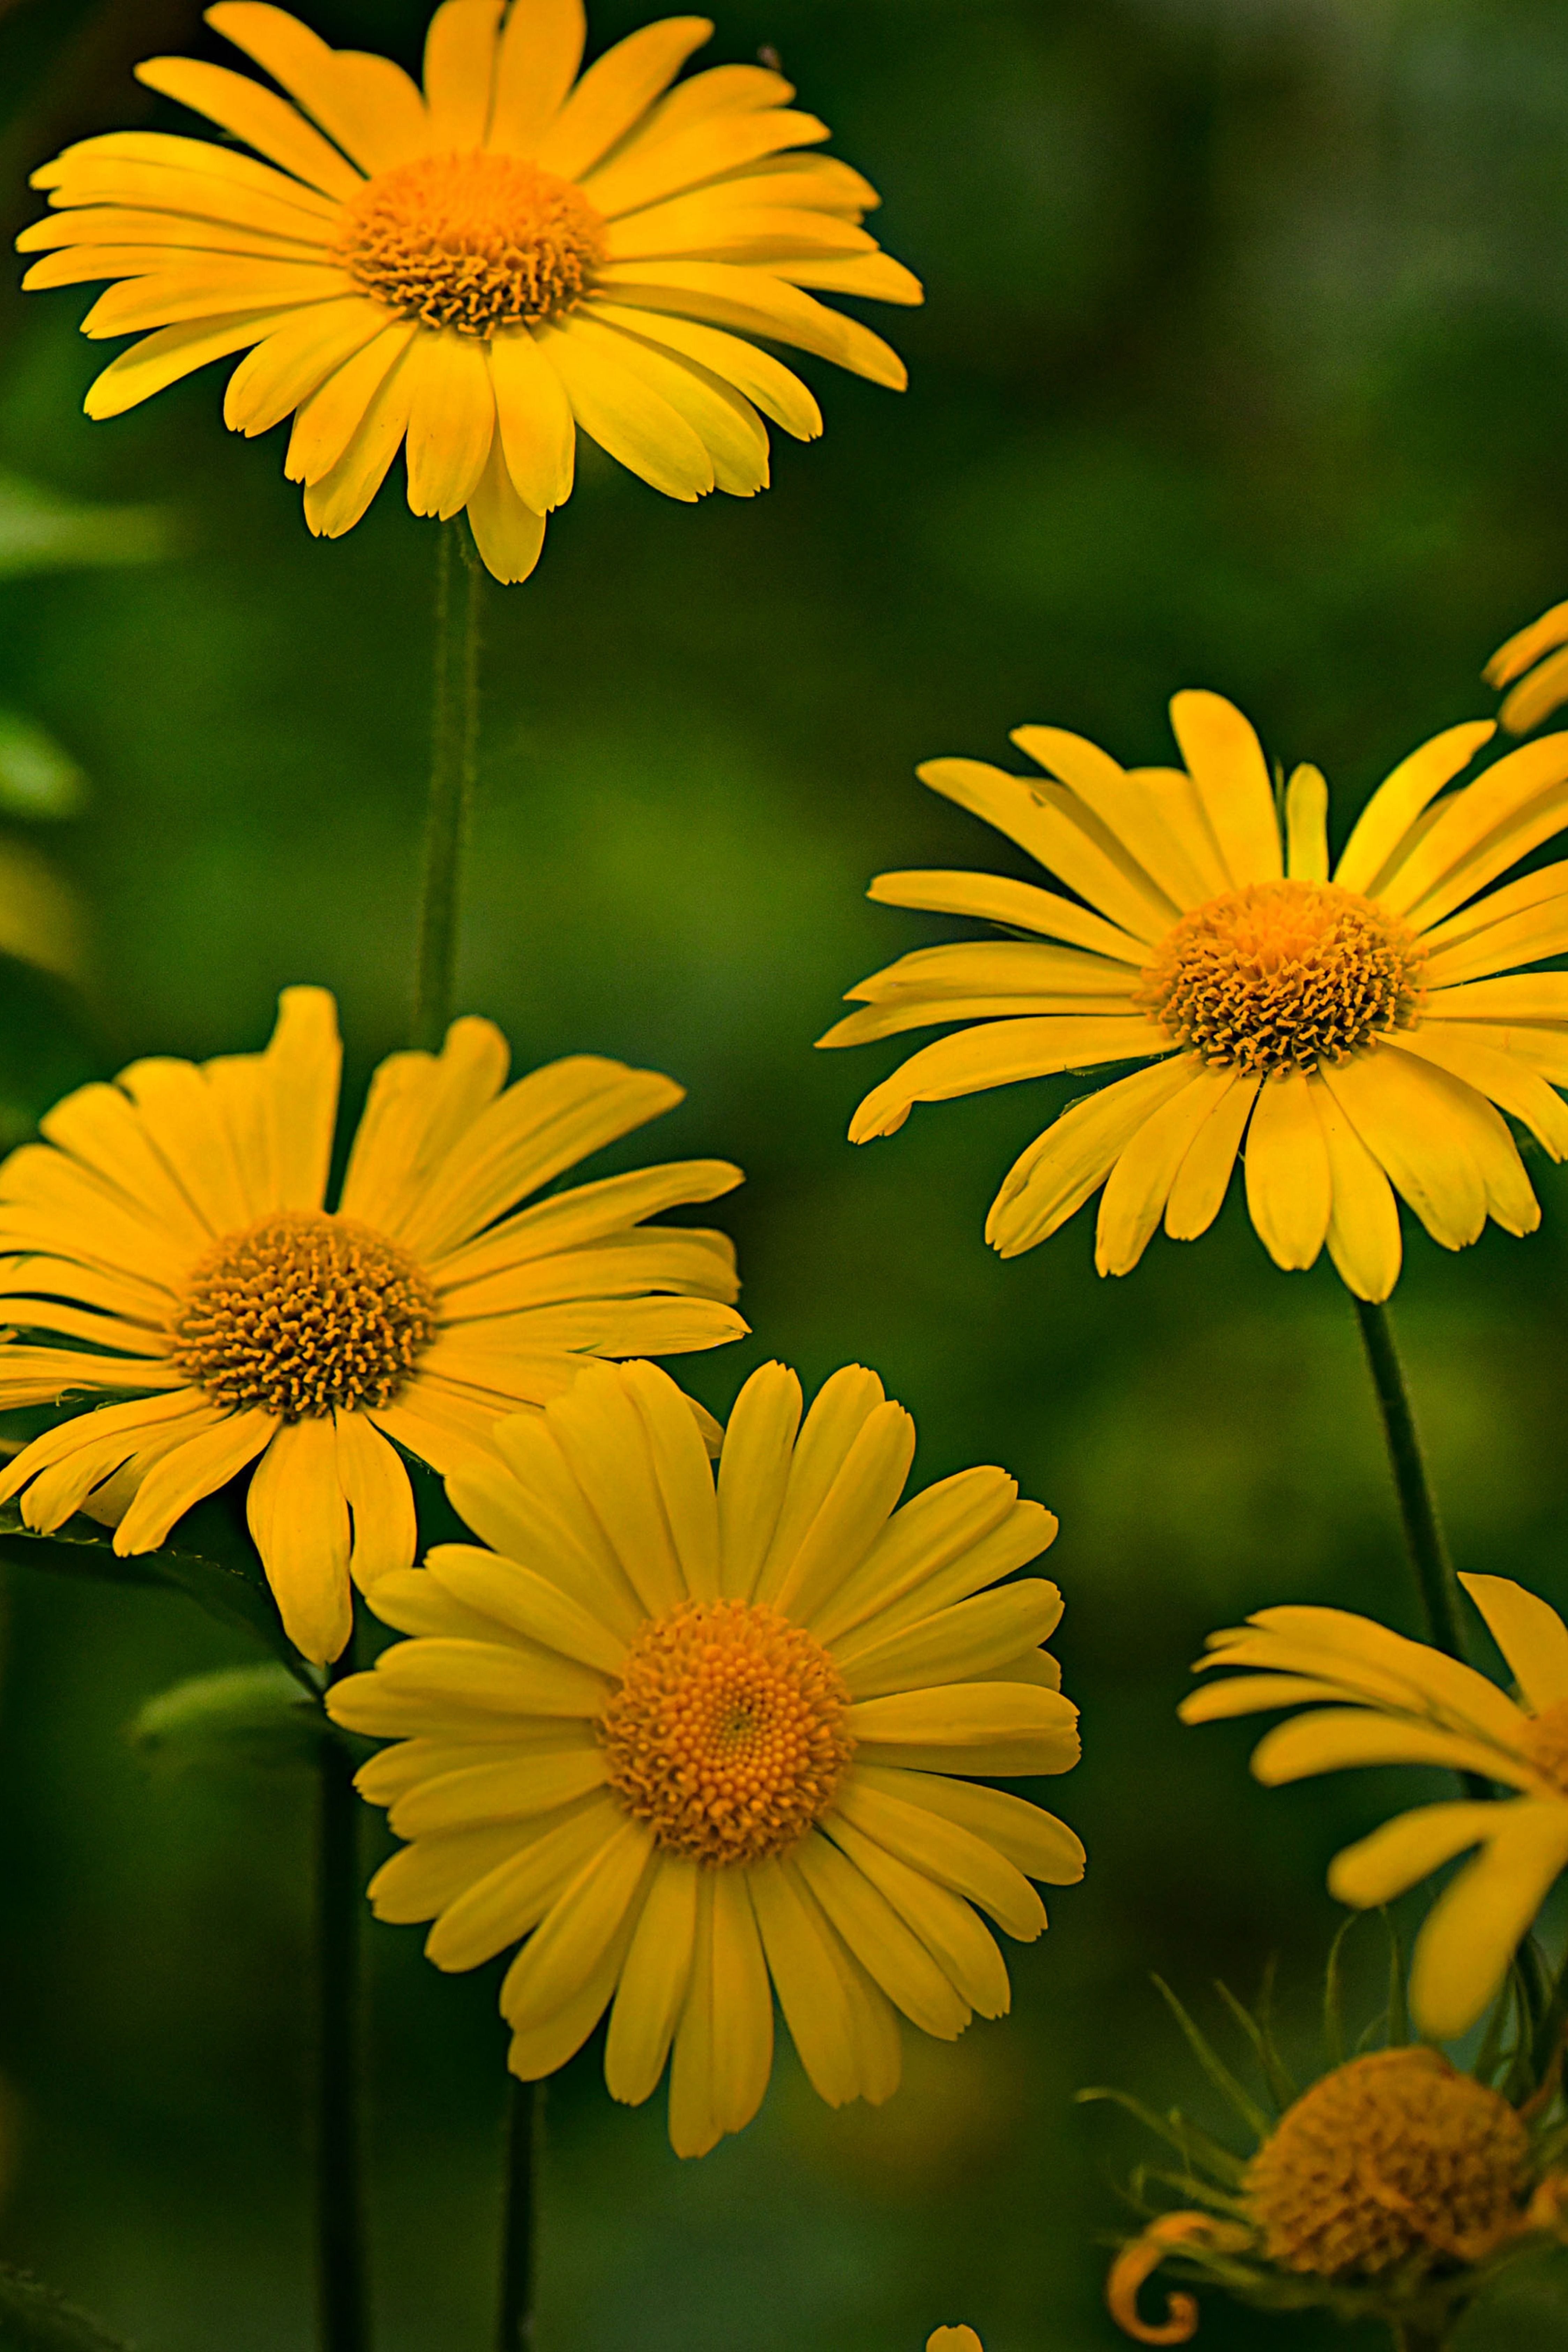 Flowers Yellow Green Leaves Field Plants Photooftheday